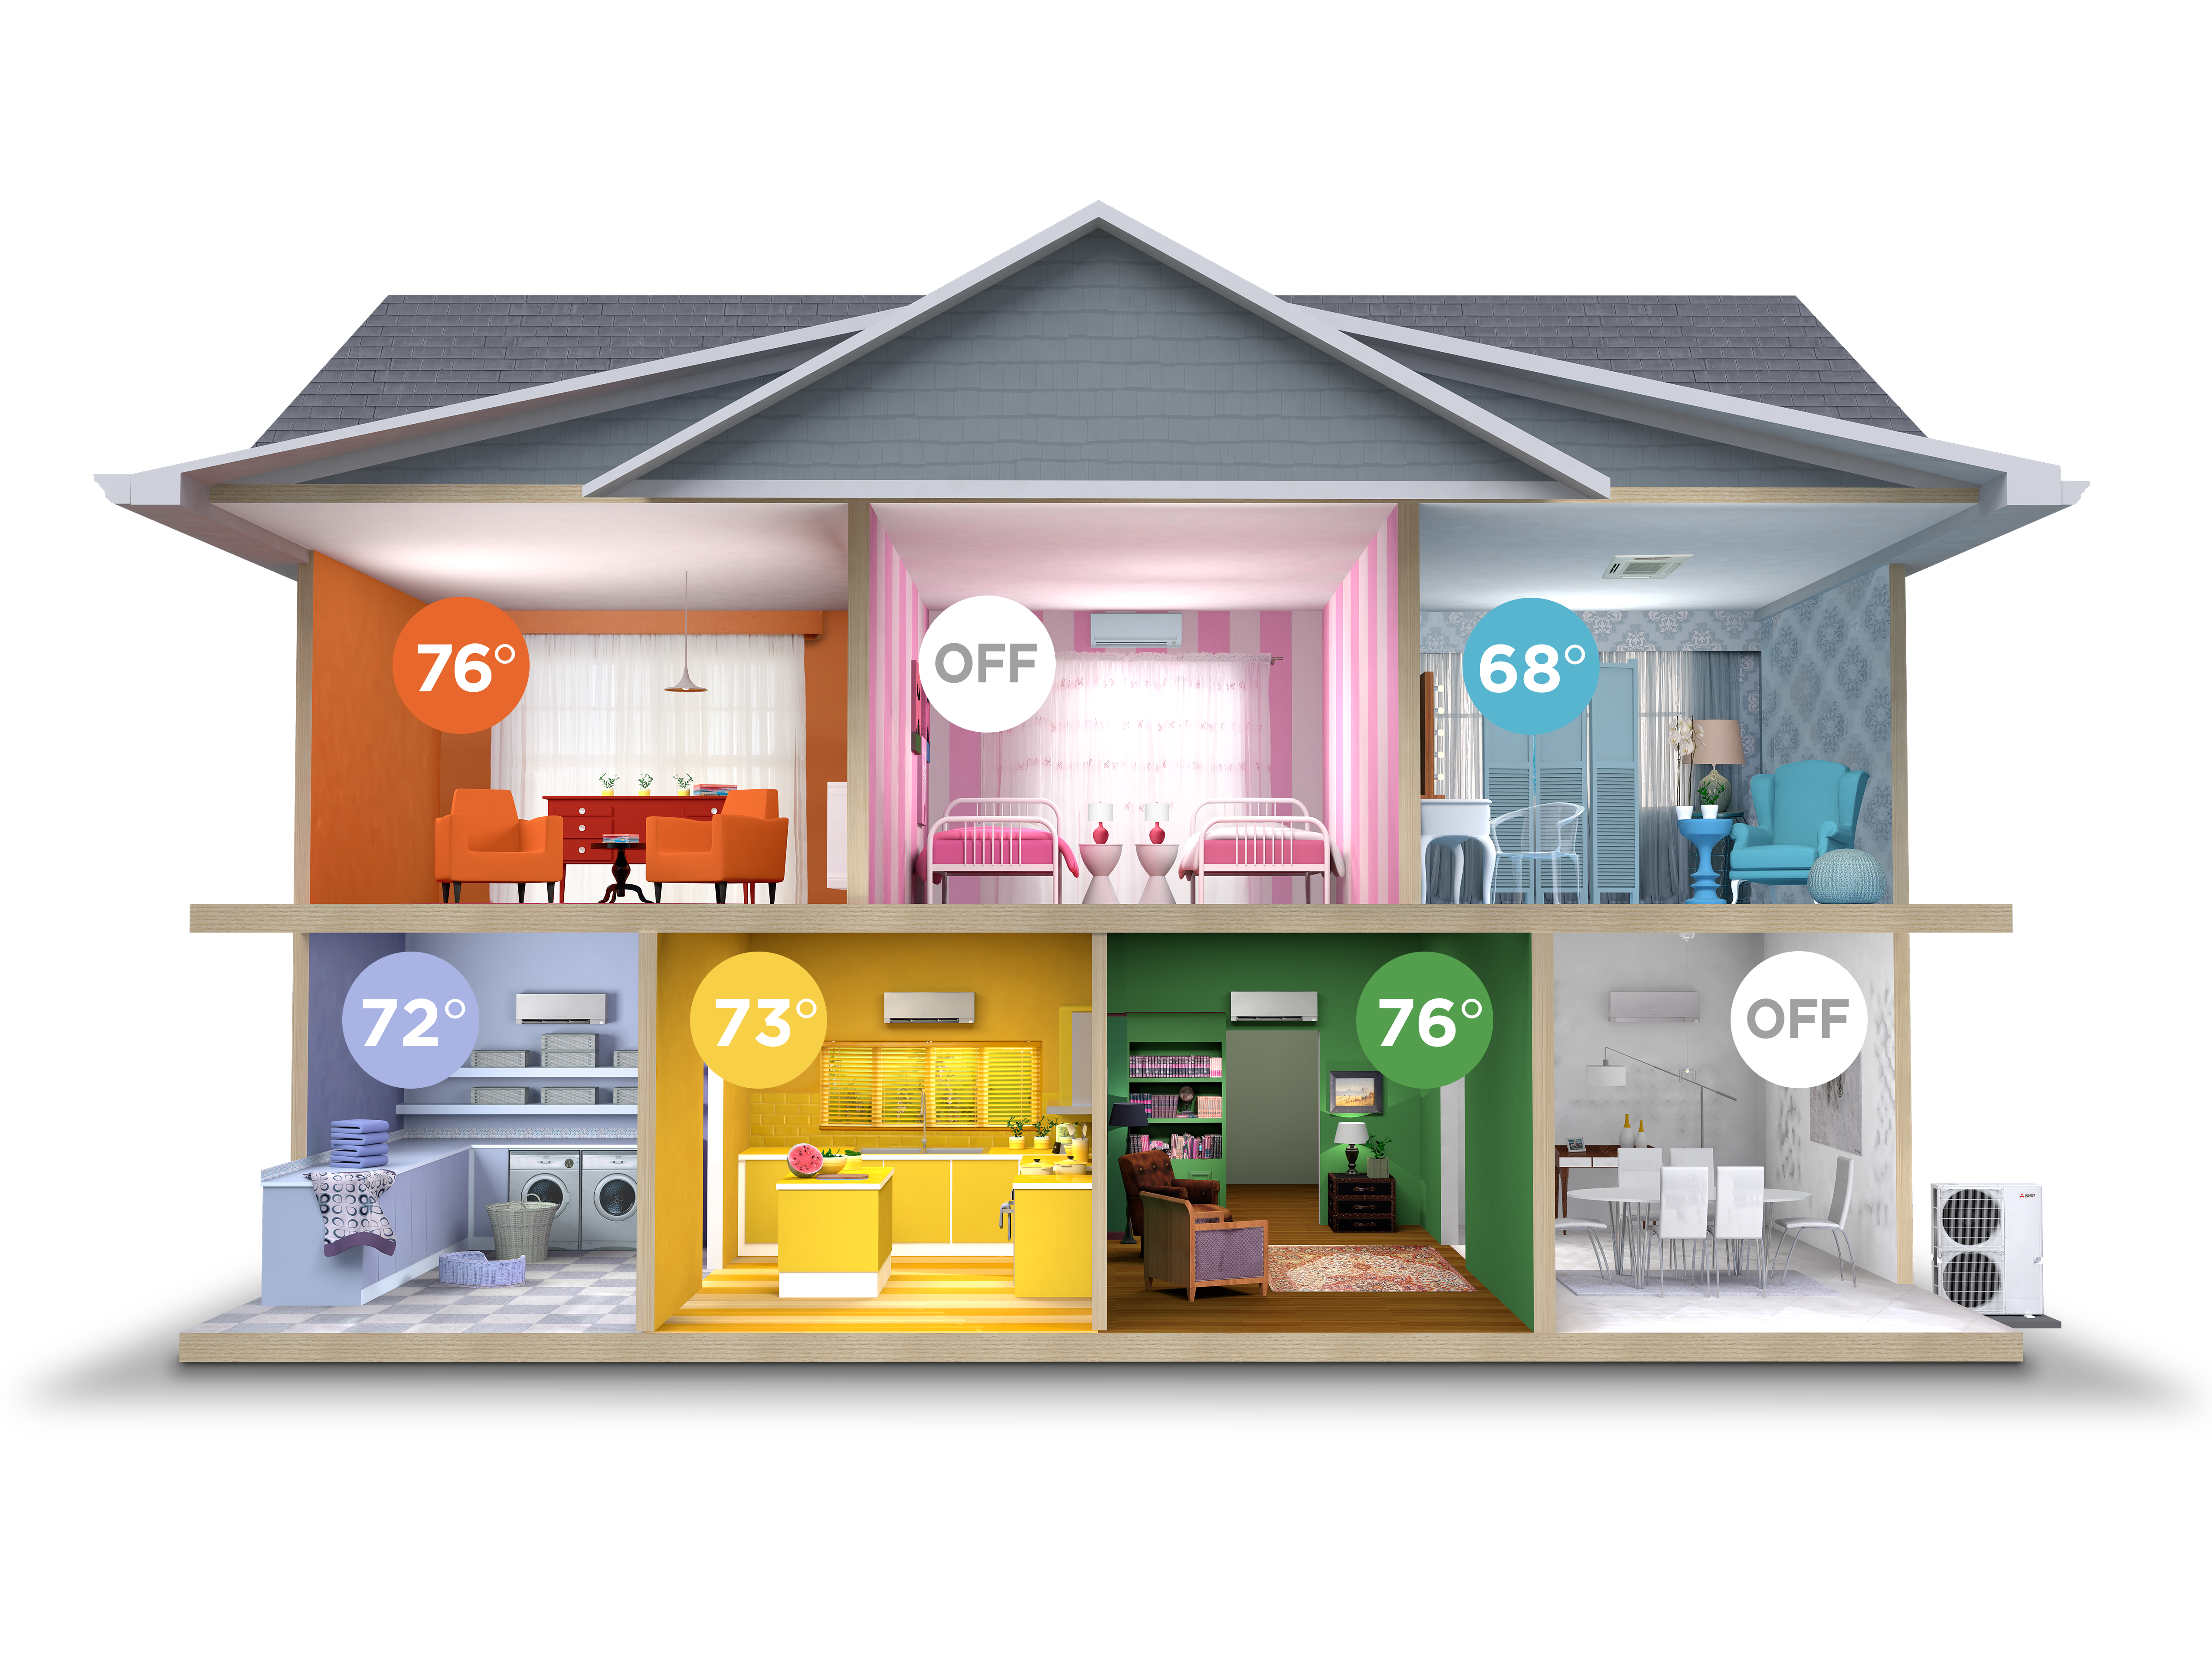 3 advantages of a multi-zone heating & cooling system - grant